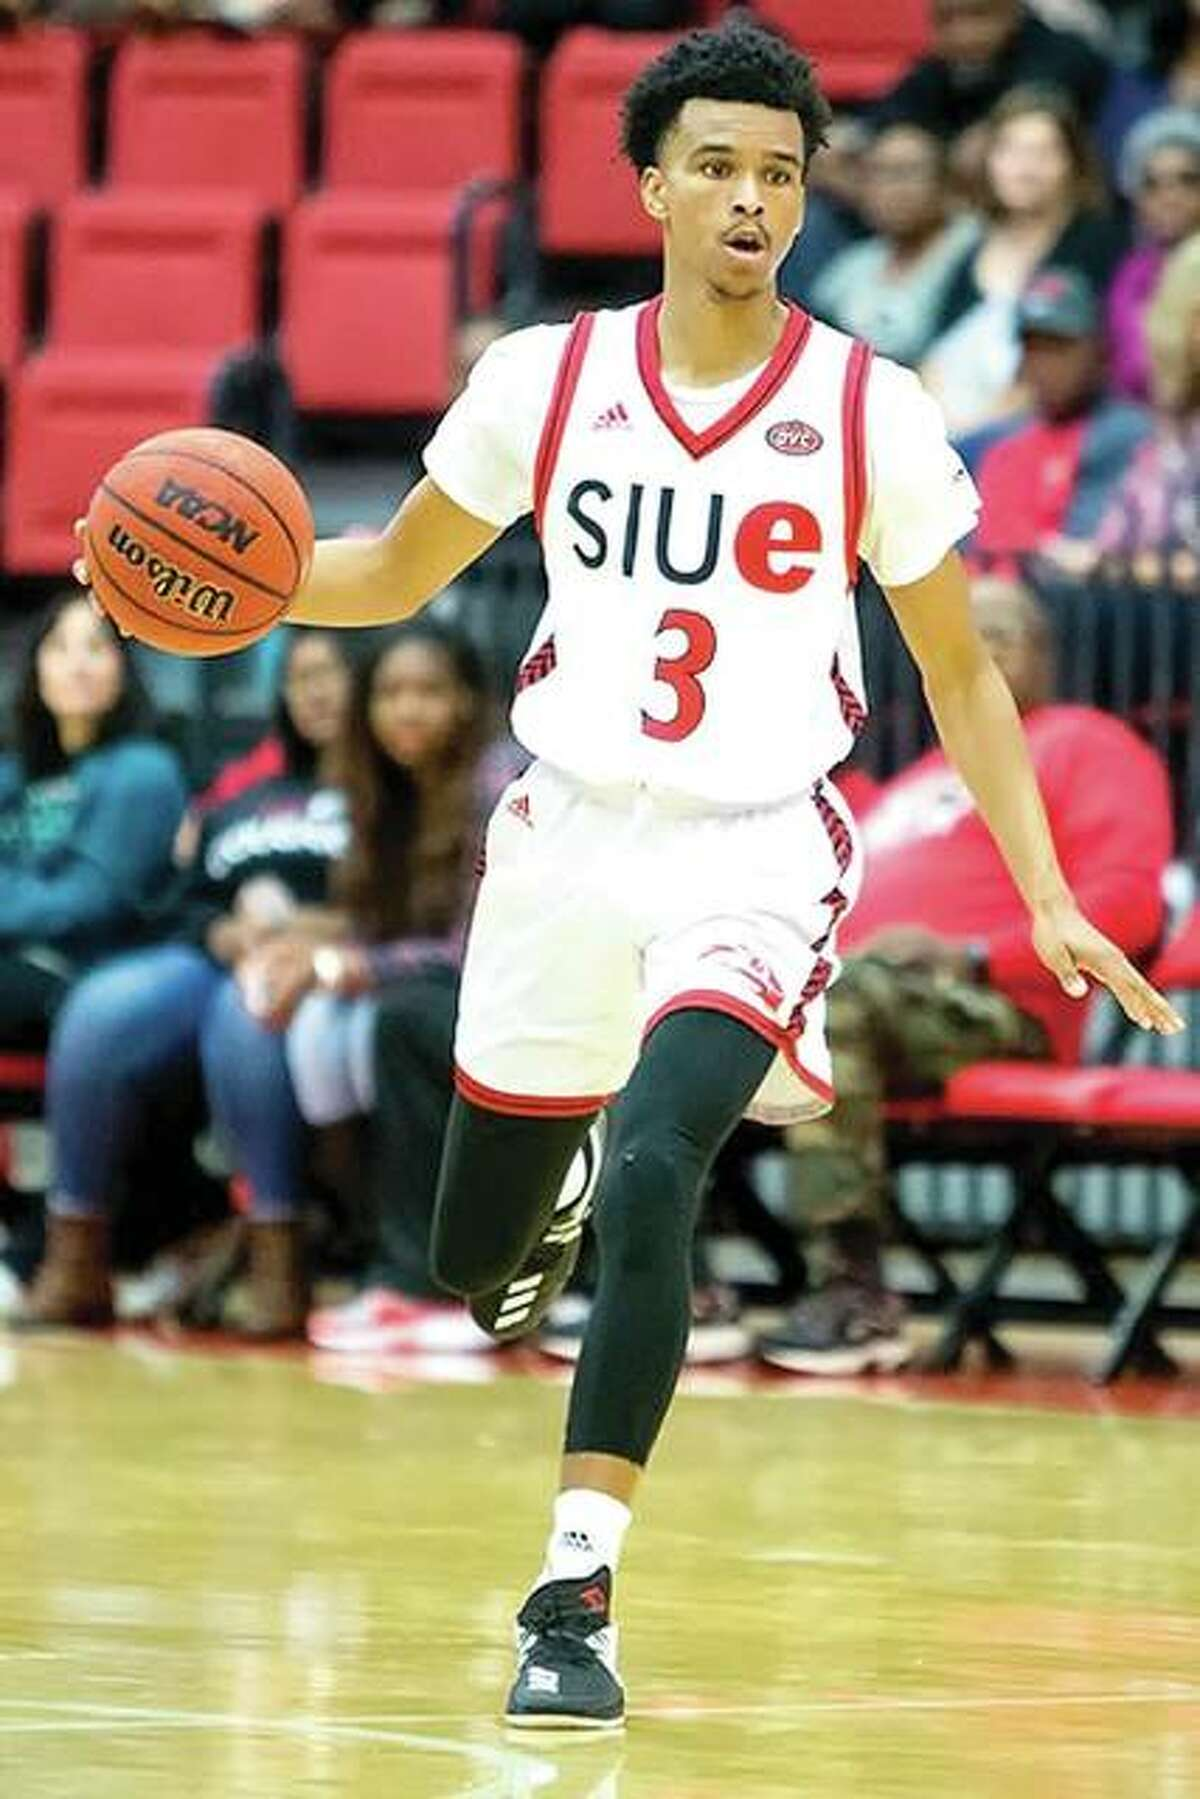 Daniel Kinchen scored 23 points to lead SIUE to its first victory of the season, an 80-76 decision over Stetson Saturday in Deland, Fla.